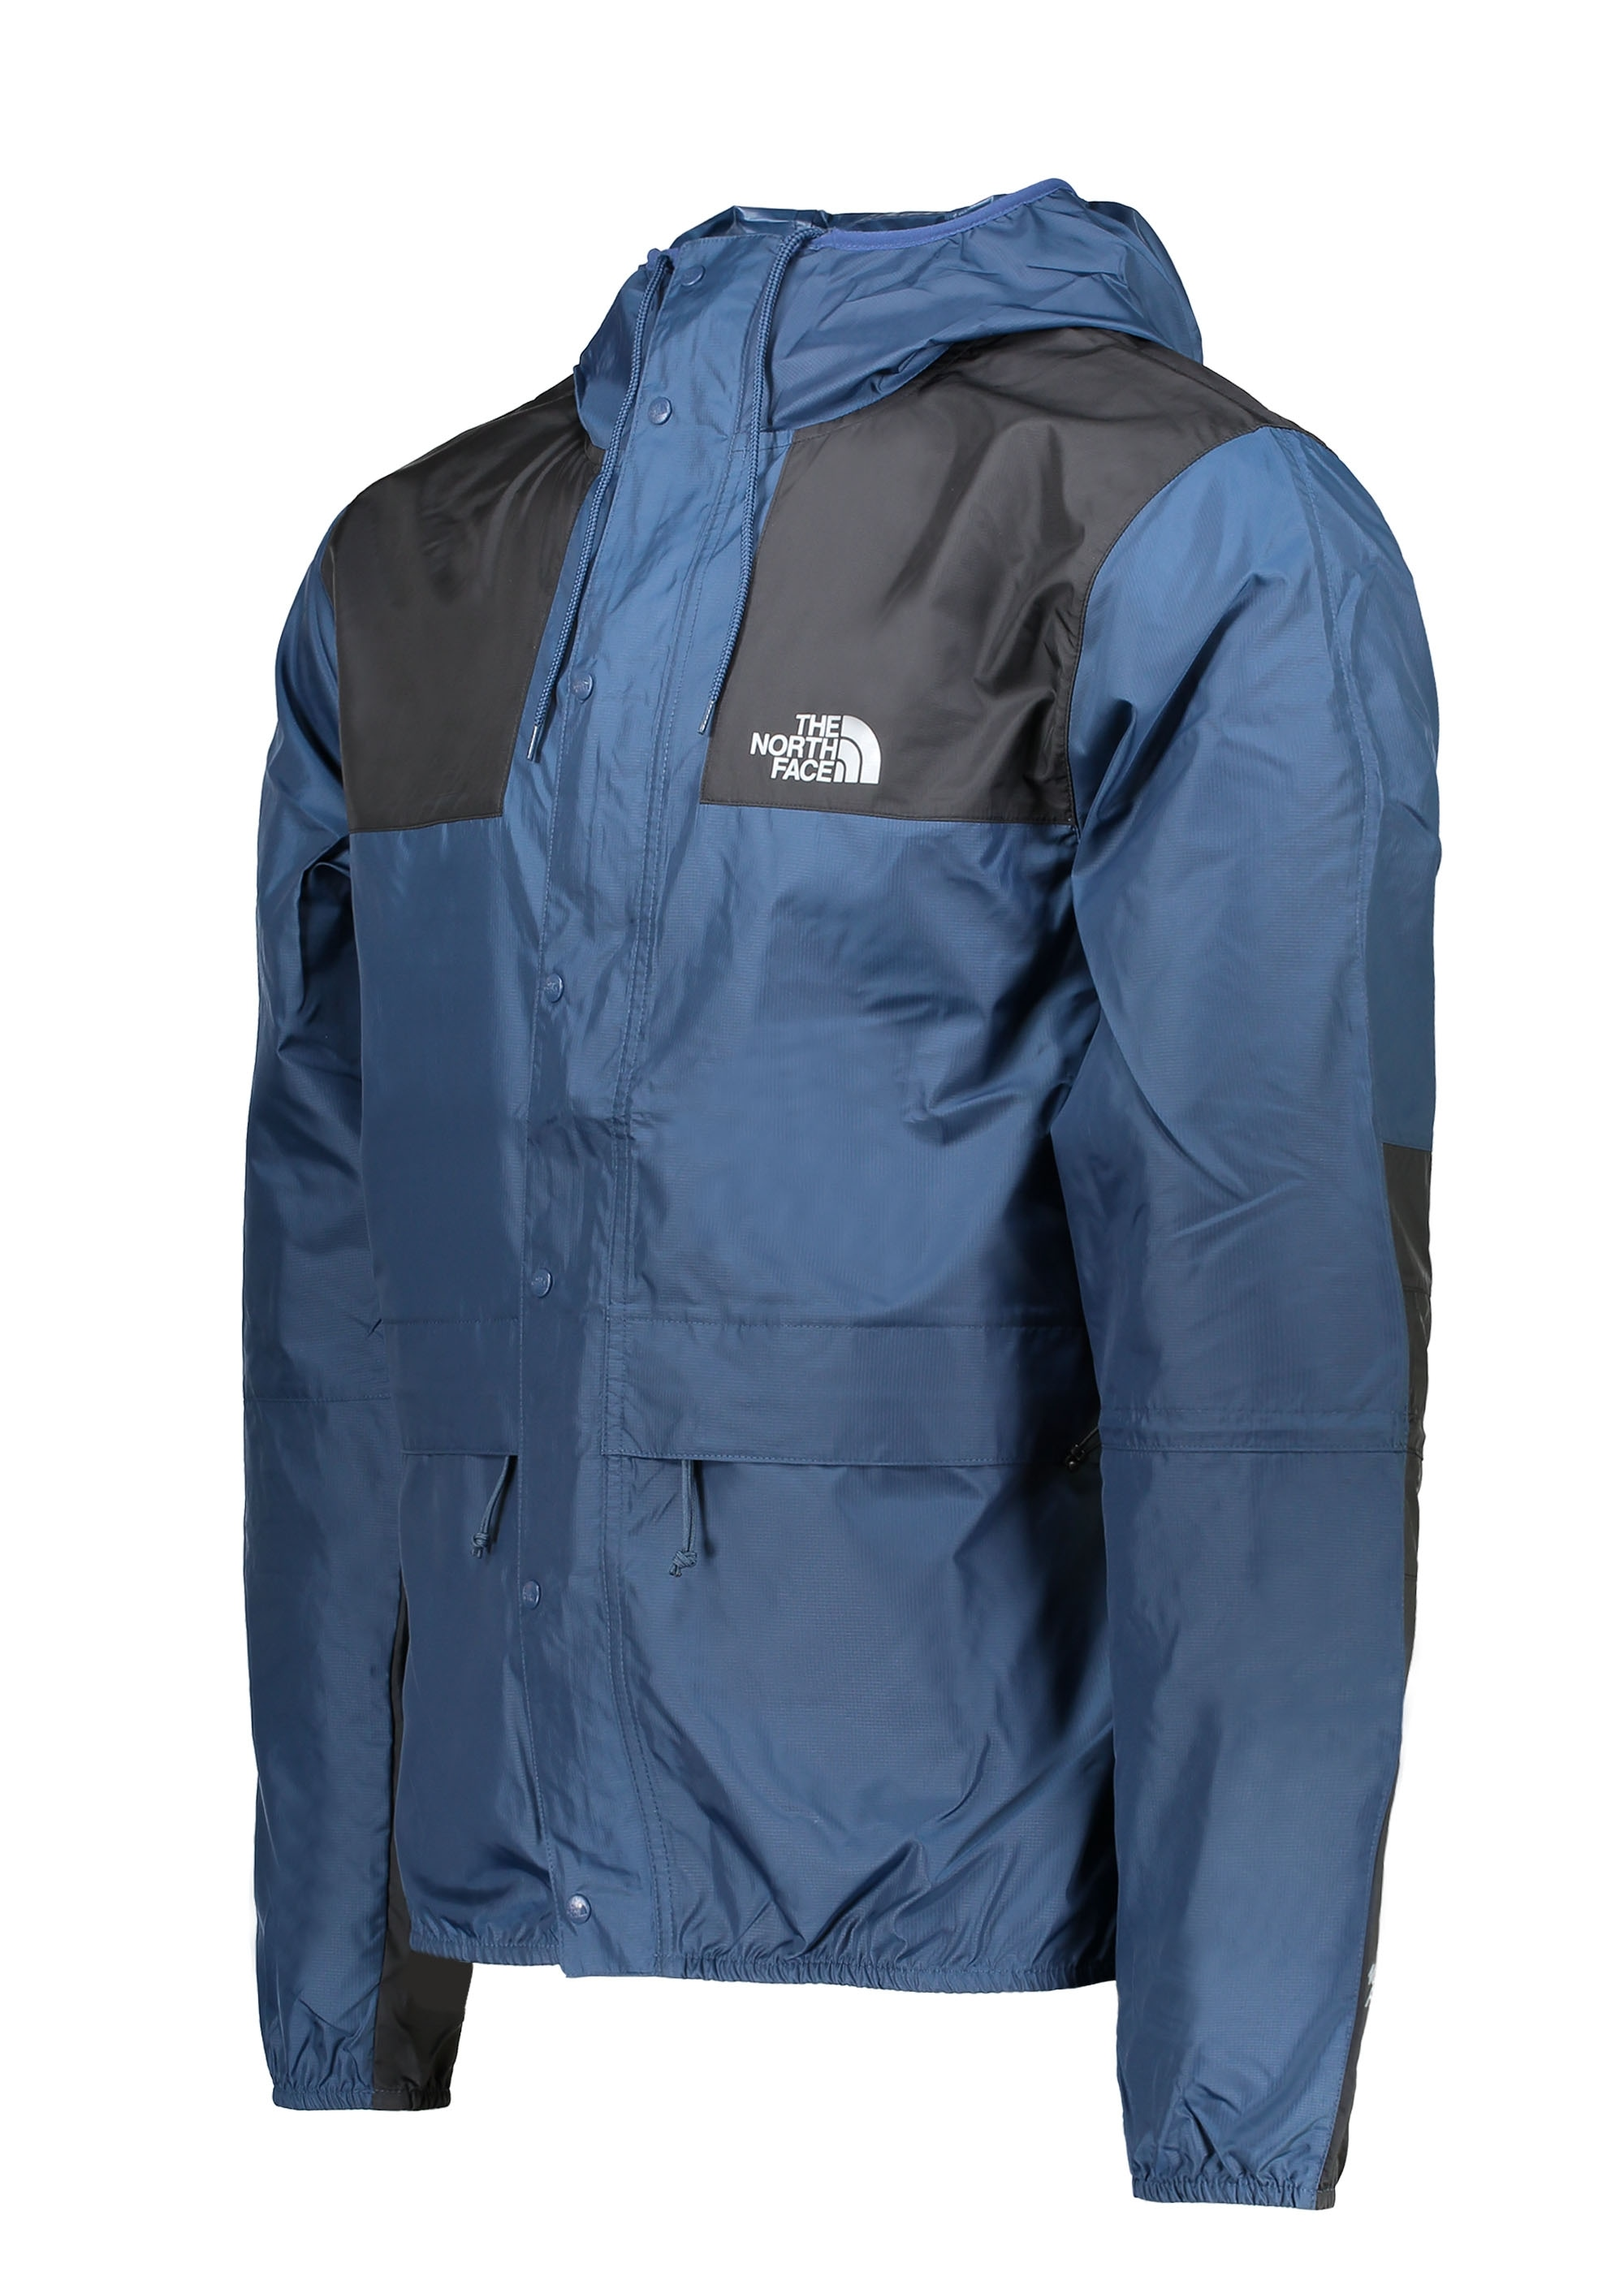 5f944d510 The North Face 1985 Mountain Jacket - Shady Blue